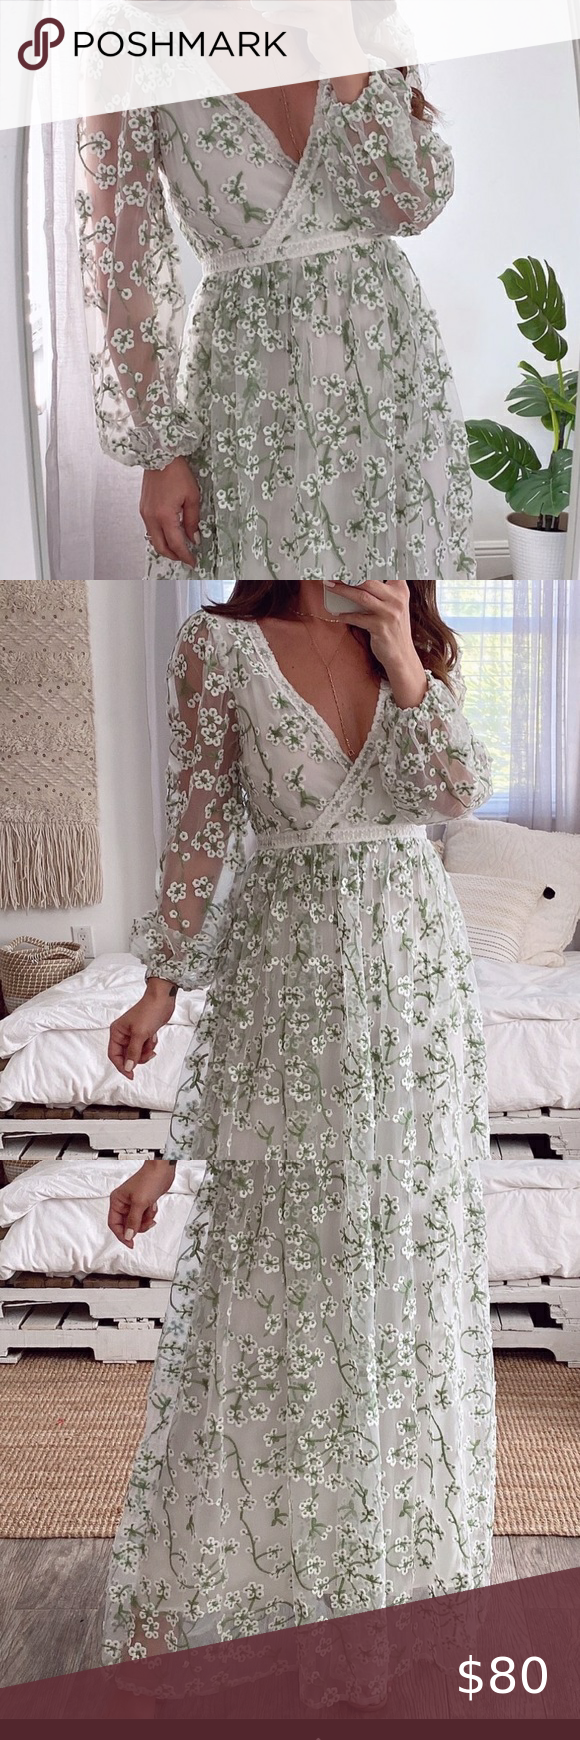 White Embroidered Maxi Dress Bridal Engagement Embroidered Maxi Dress White Flowy Maxi Dress Engagement Party Dresses [ 1740 x 580 Pixel ]